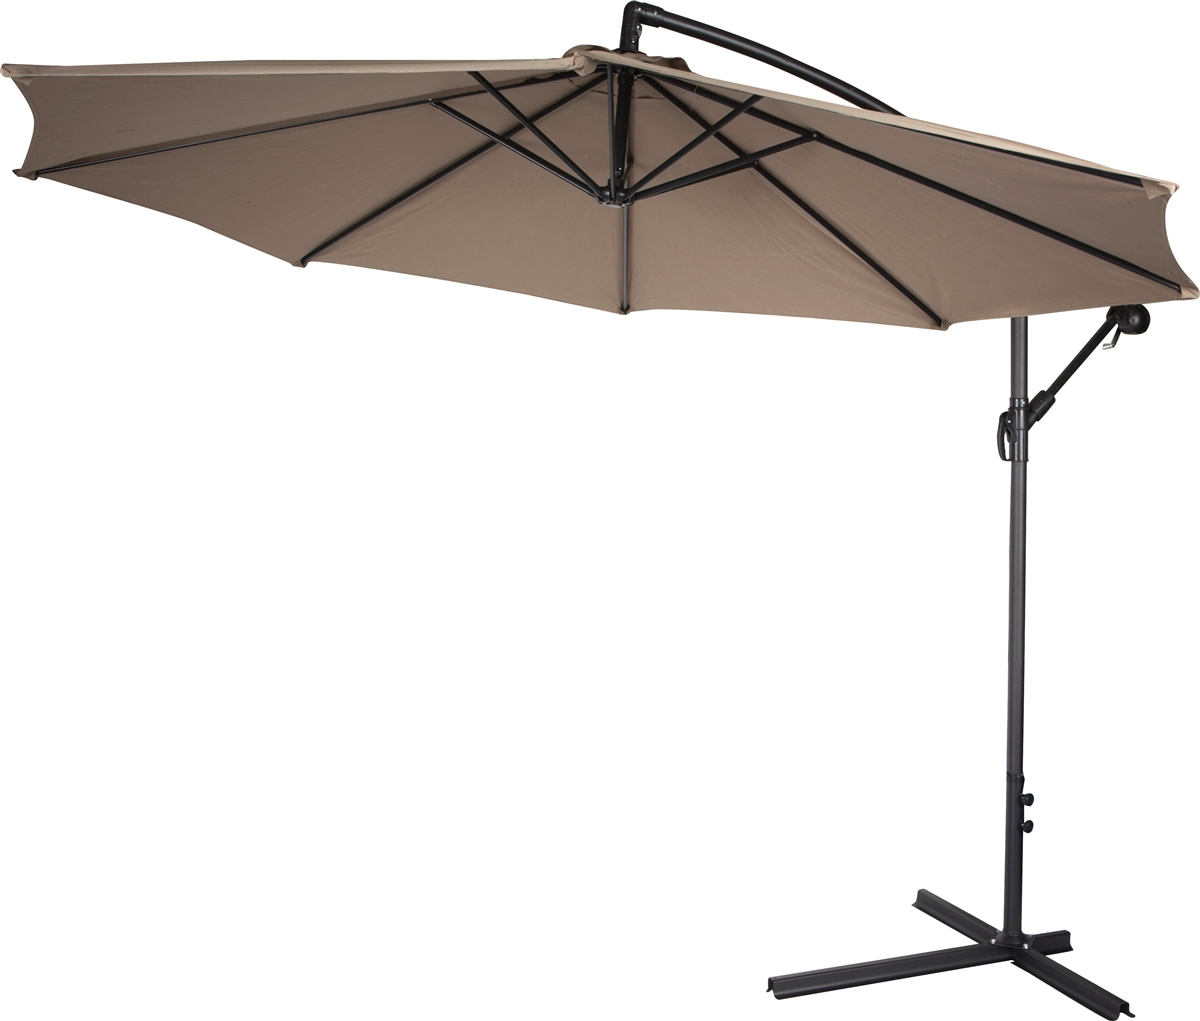 10ft Out Door Deck Patio Umbrella Off Set Tilt Cantilever